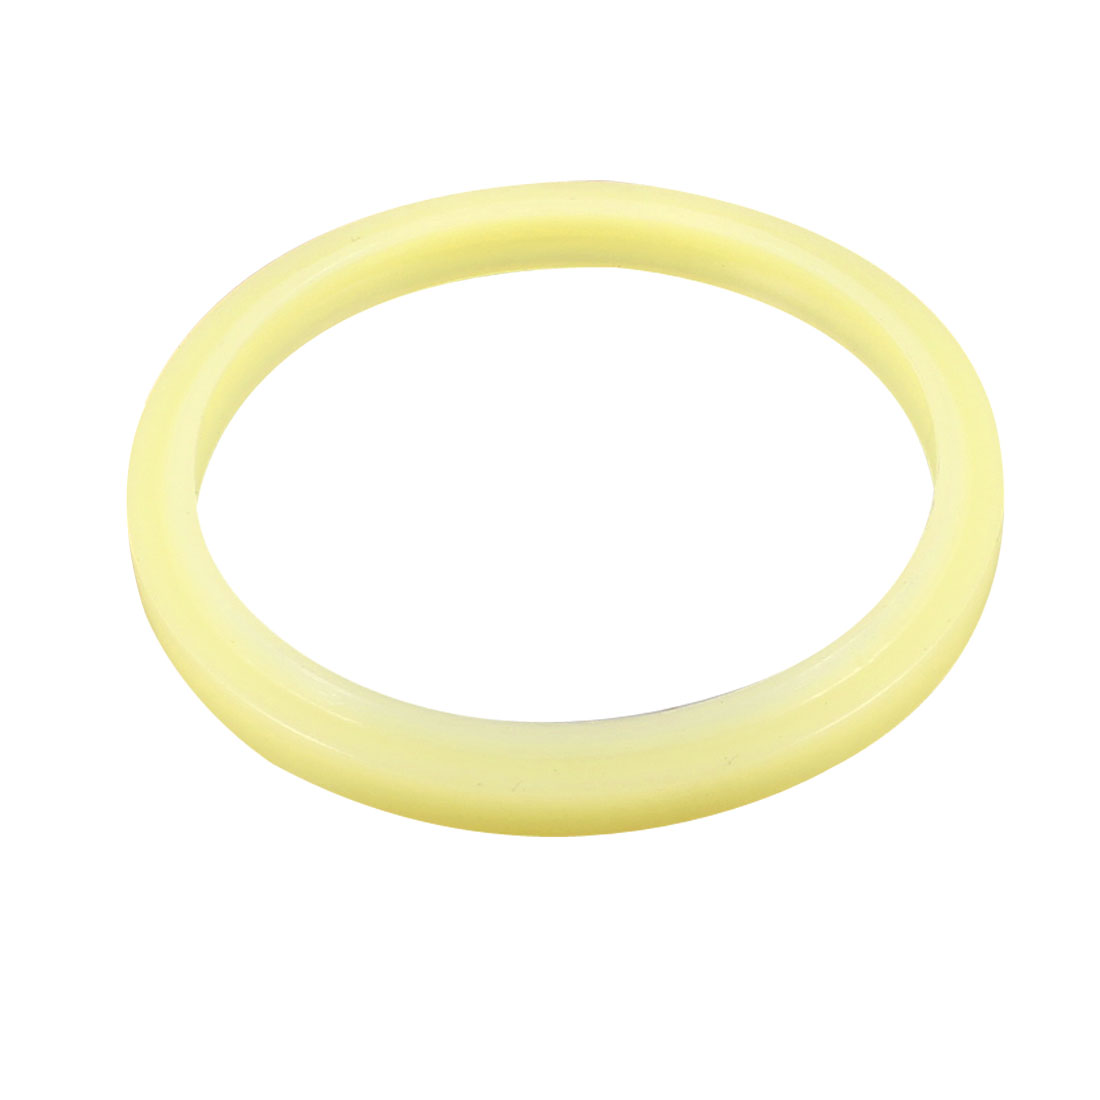 Polyurethane PU 50mm x 58mm x 6.5mm Sealing Cushion Dust Seal Ring